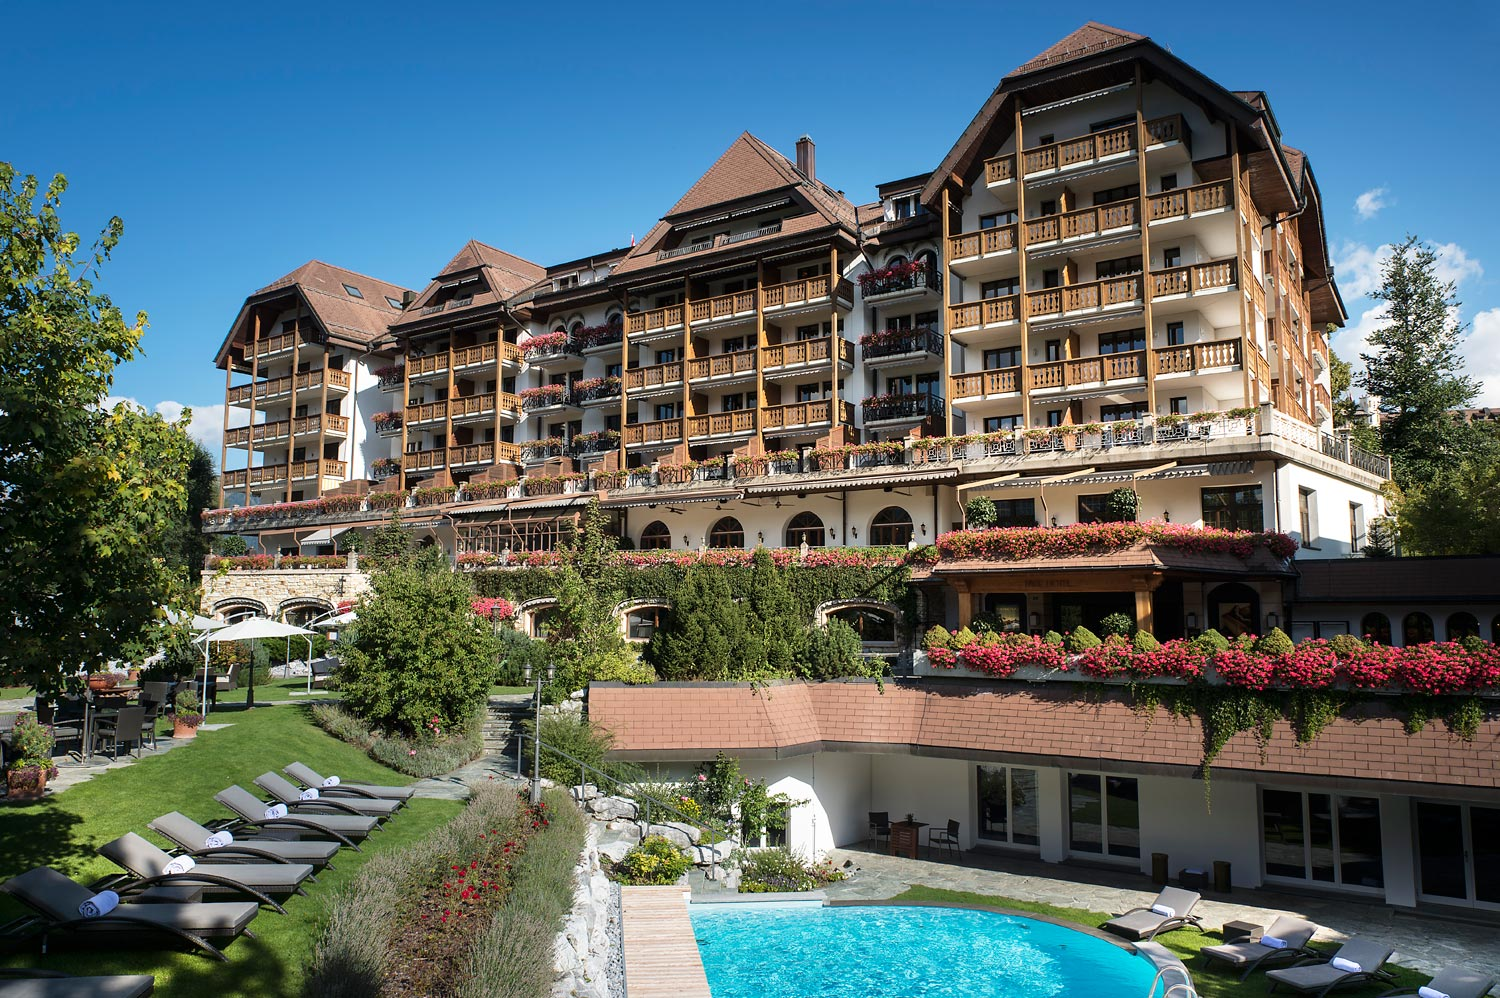 We Review Park Gstaad Hotel - 'The Last Paradise in a Crazy World' 6